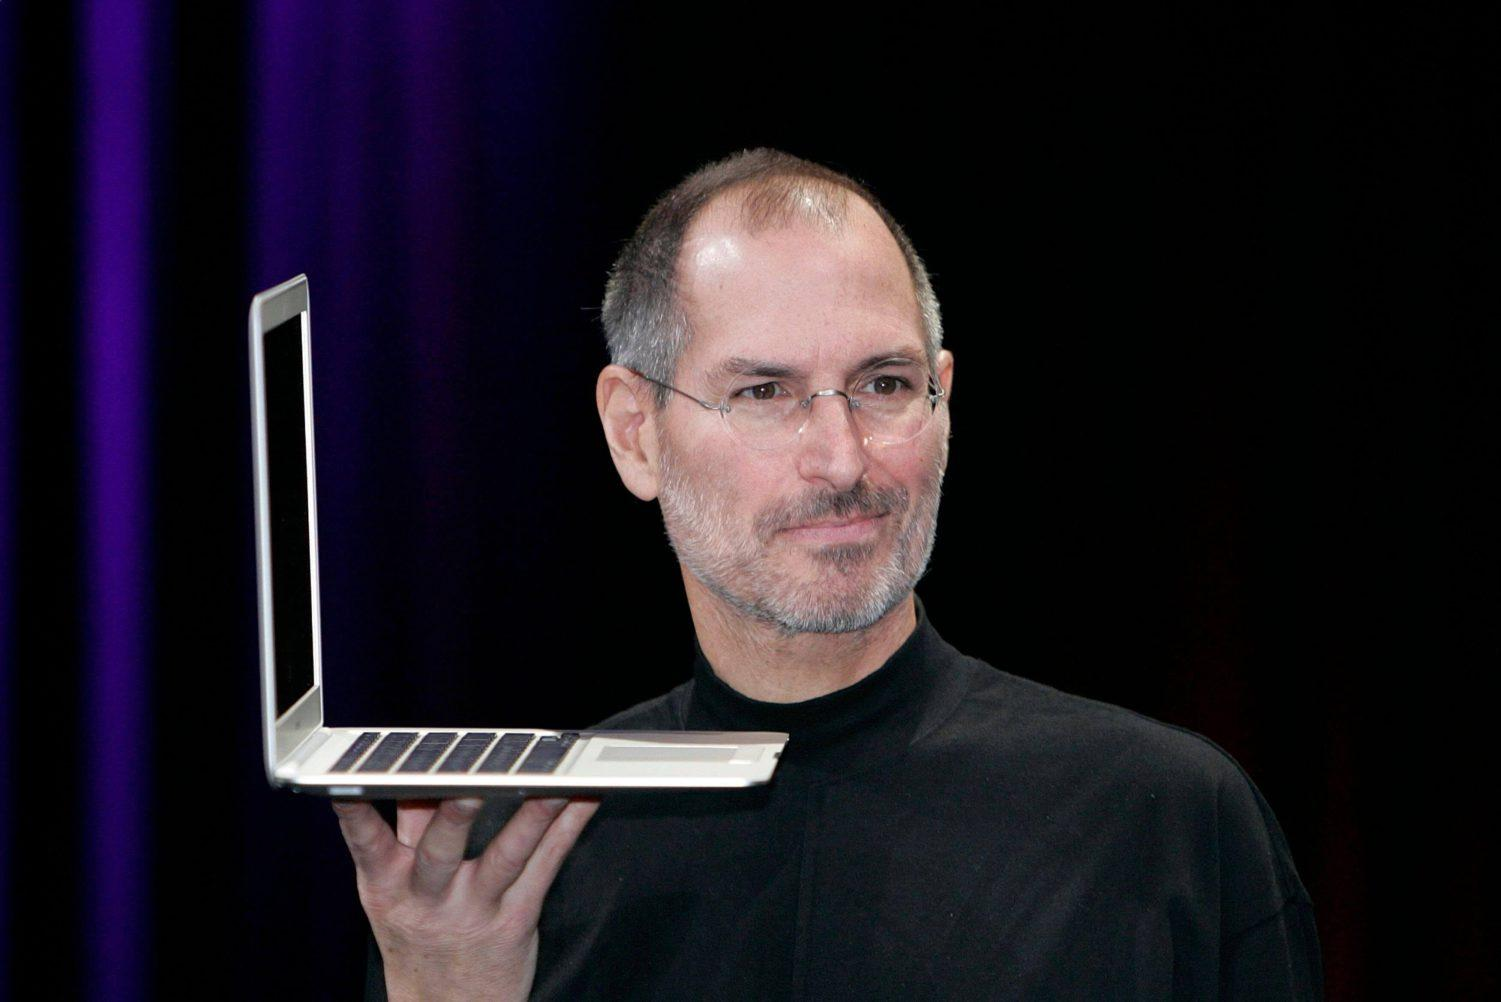 MacBook Air Jobs